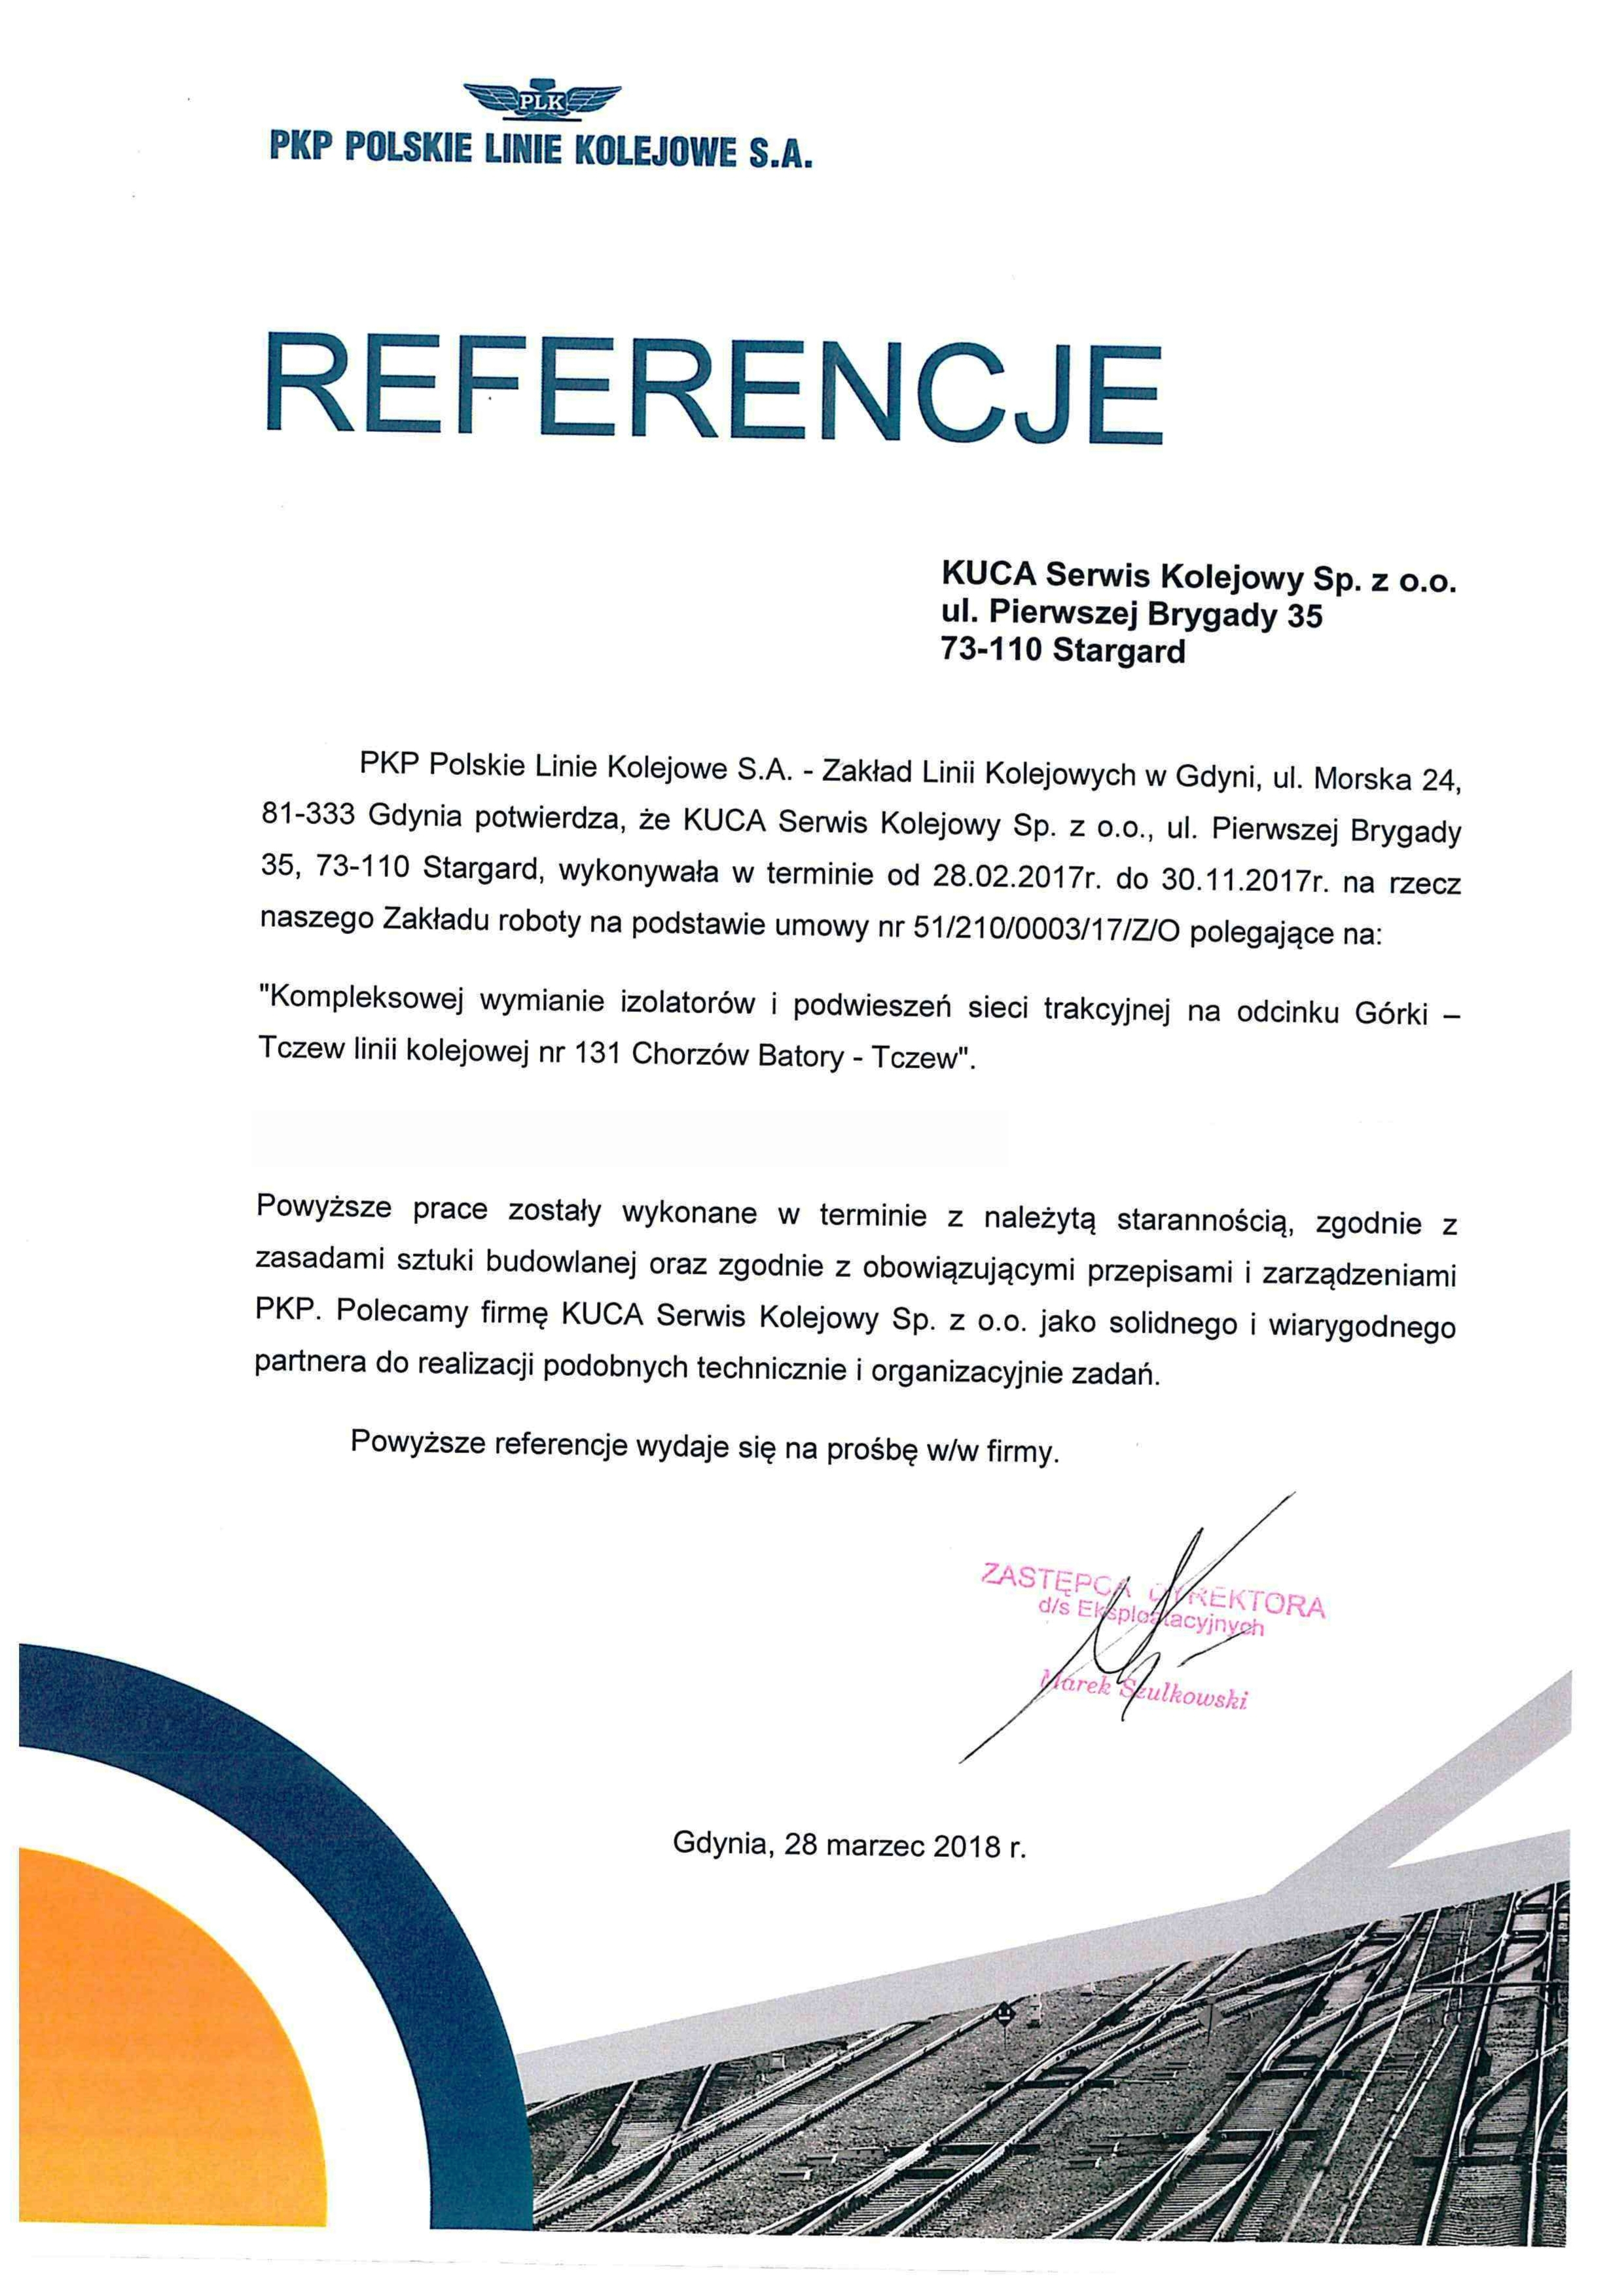 Referencje PKP S.A. 28.03.2018